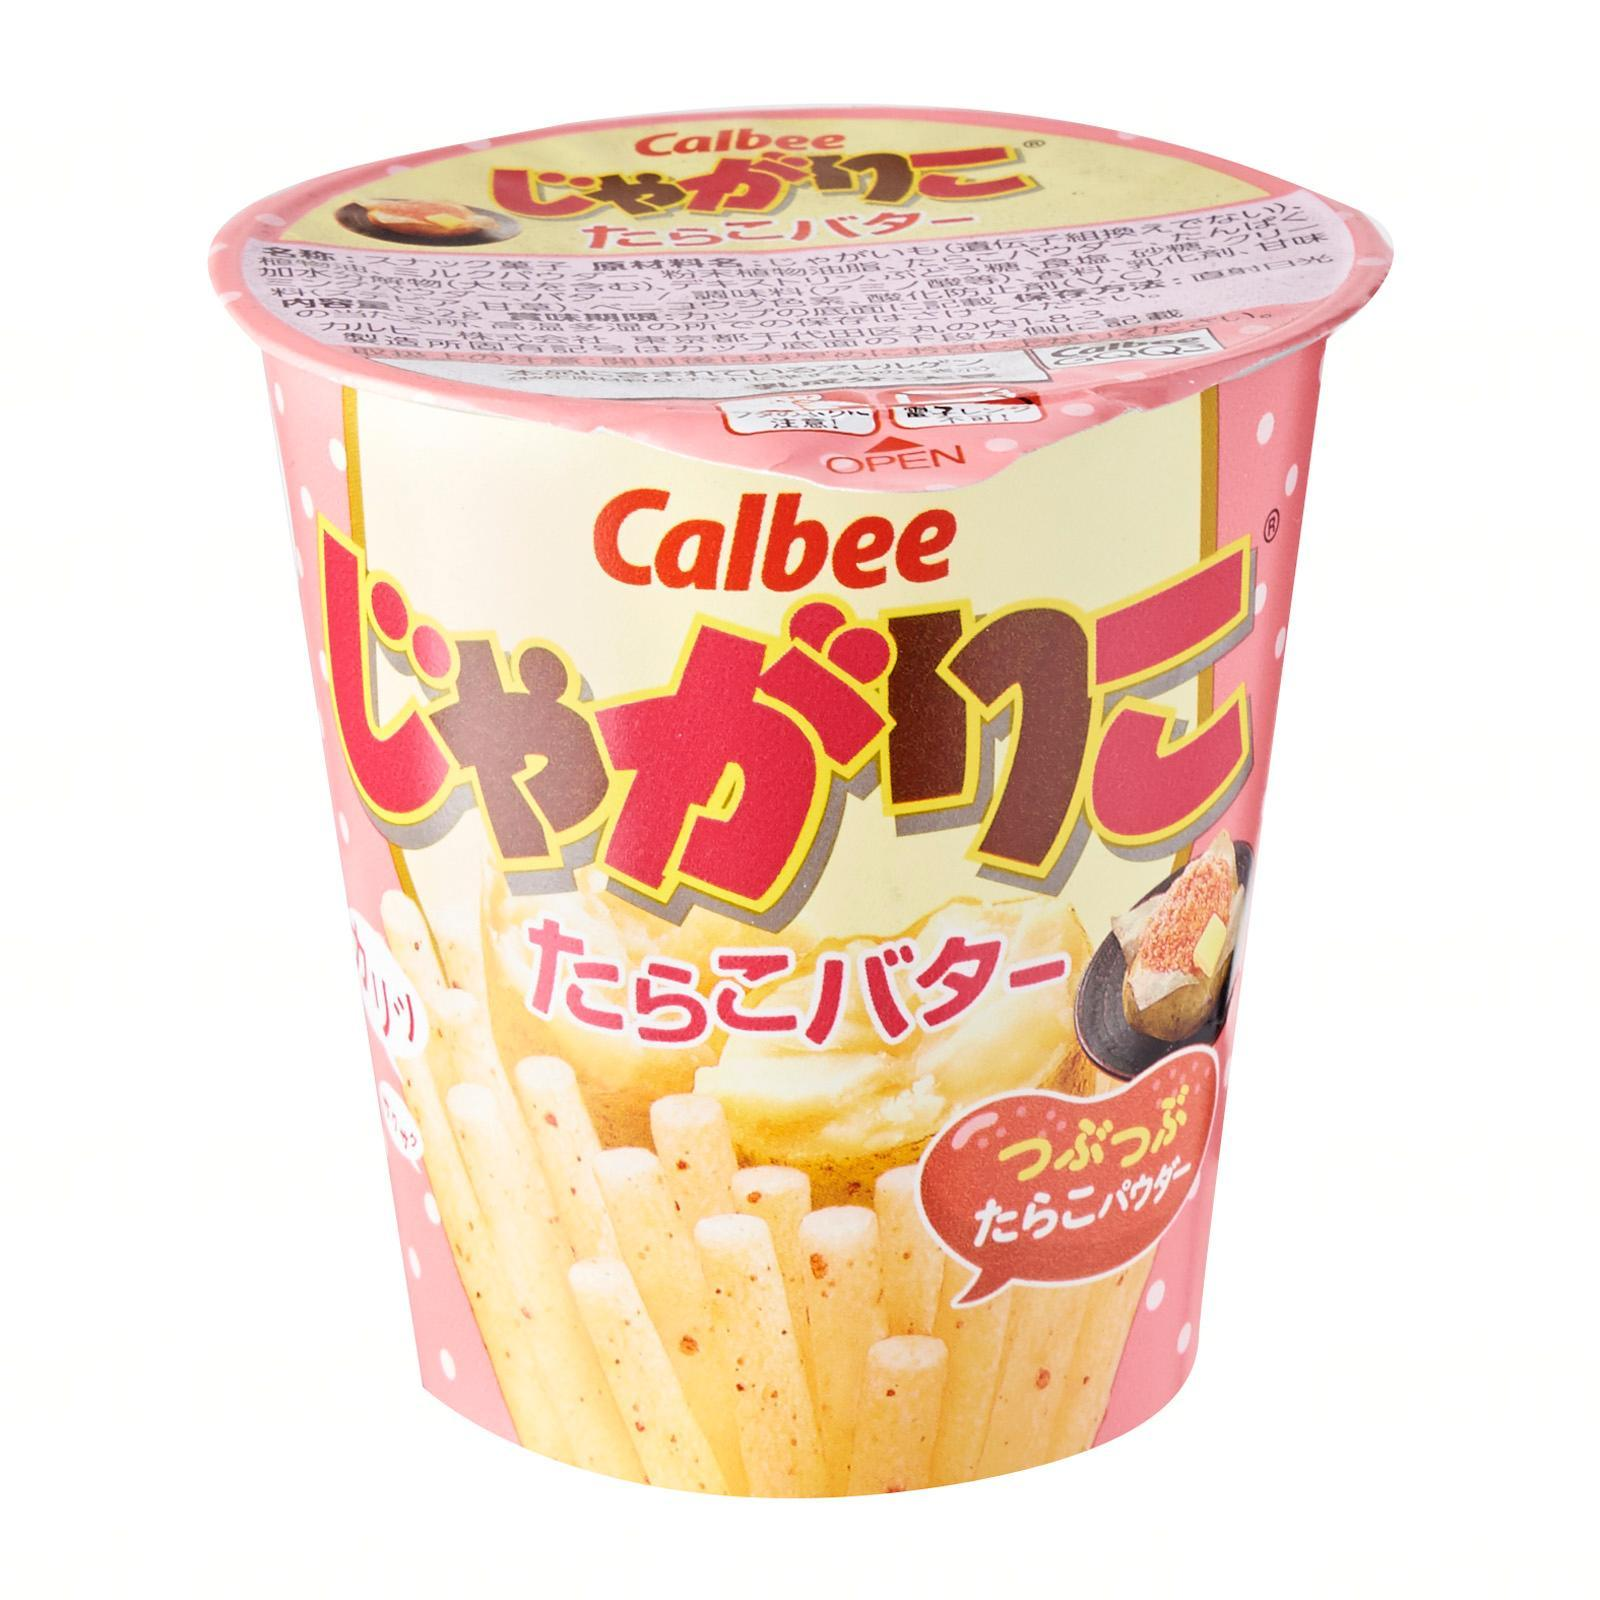 Calbee Tarako Butter Jagarico Potato Fries